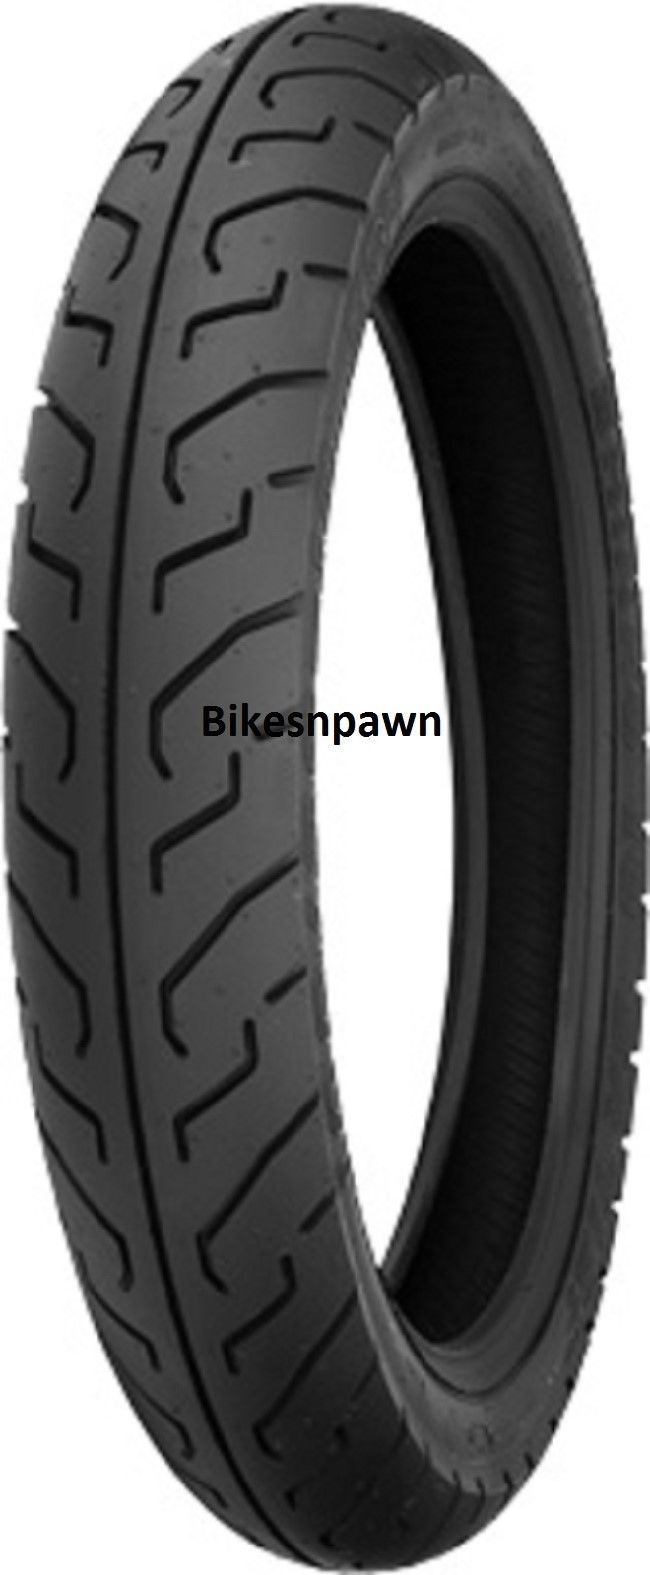 New Shinko 712 120/80-16 Front Tire 60 H Tubeless